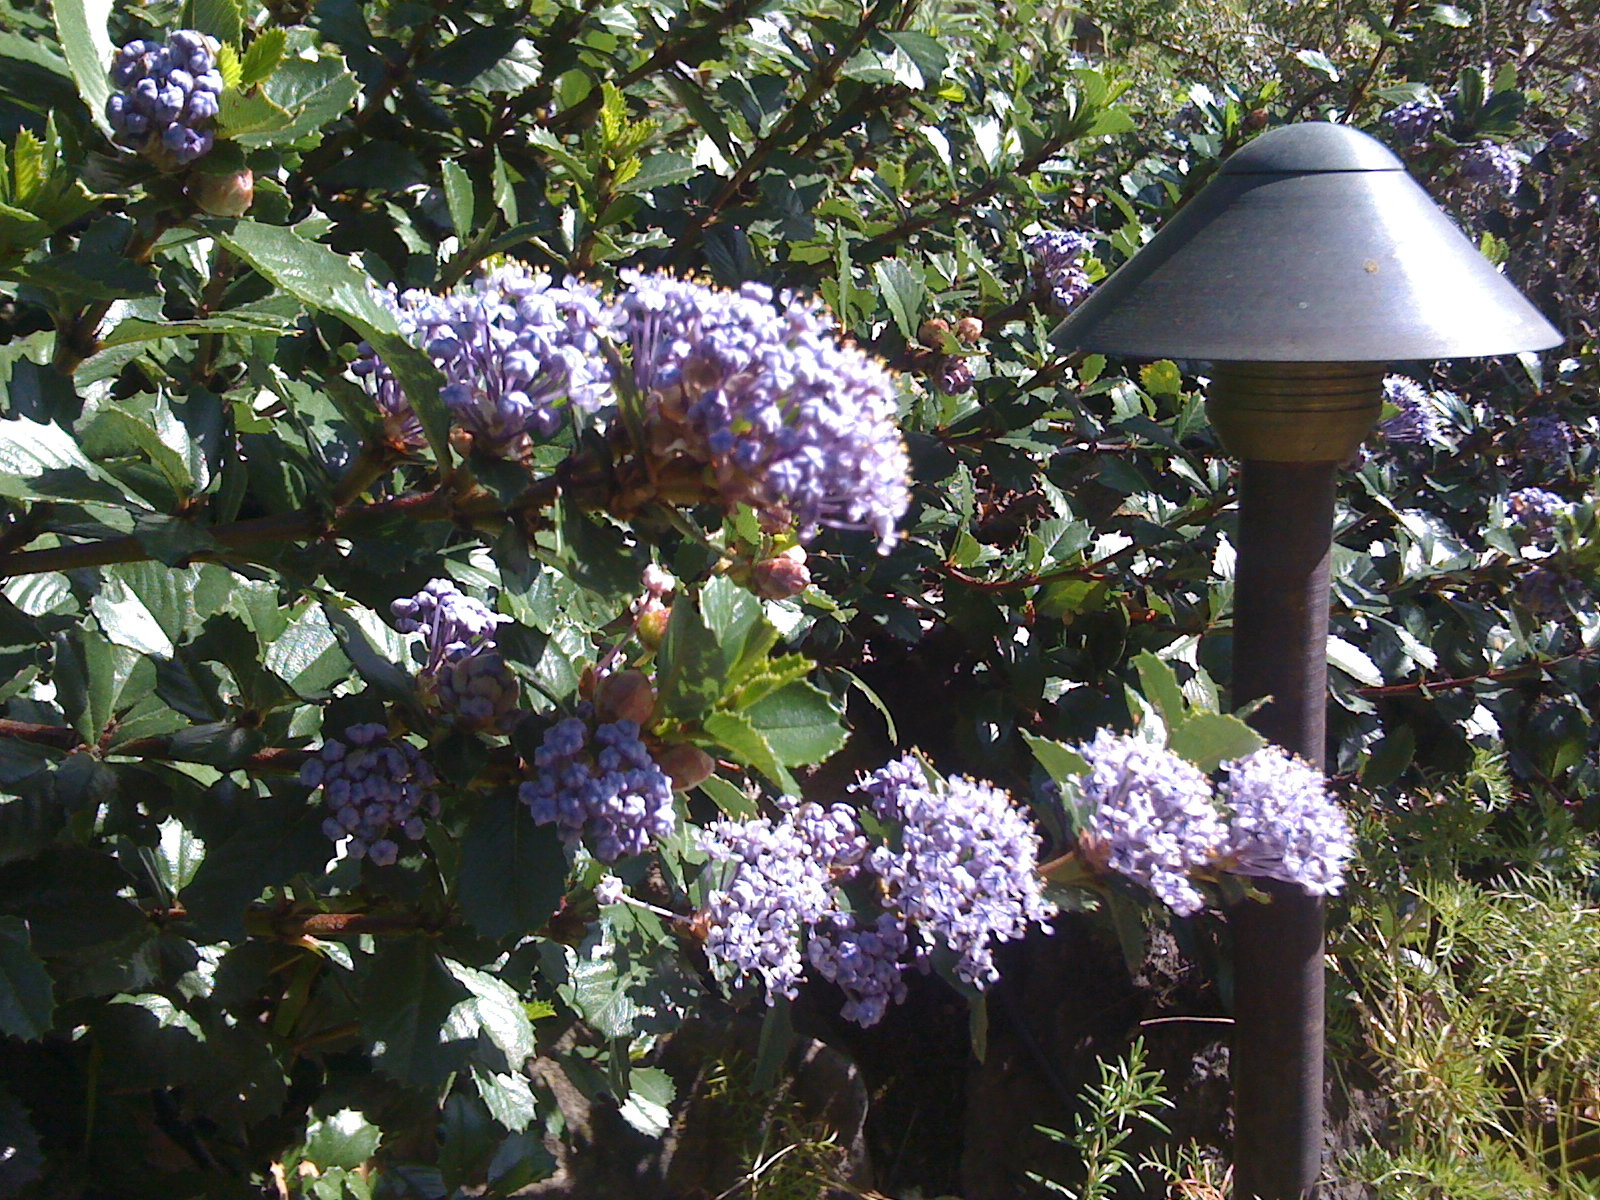 A native ceanothus blooms next to low-voltage outdoor lighting.